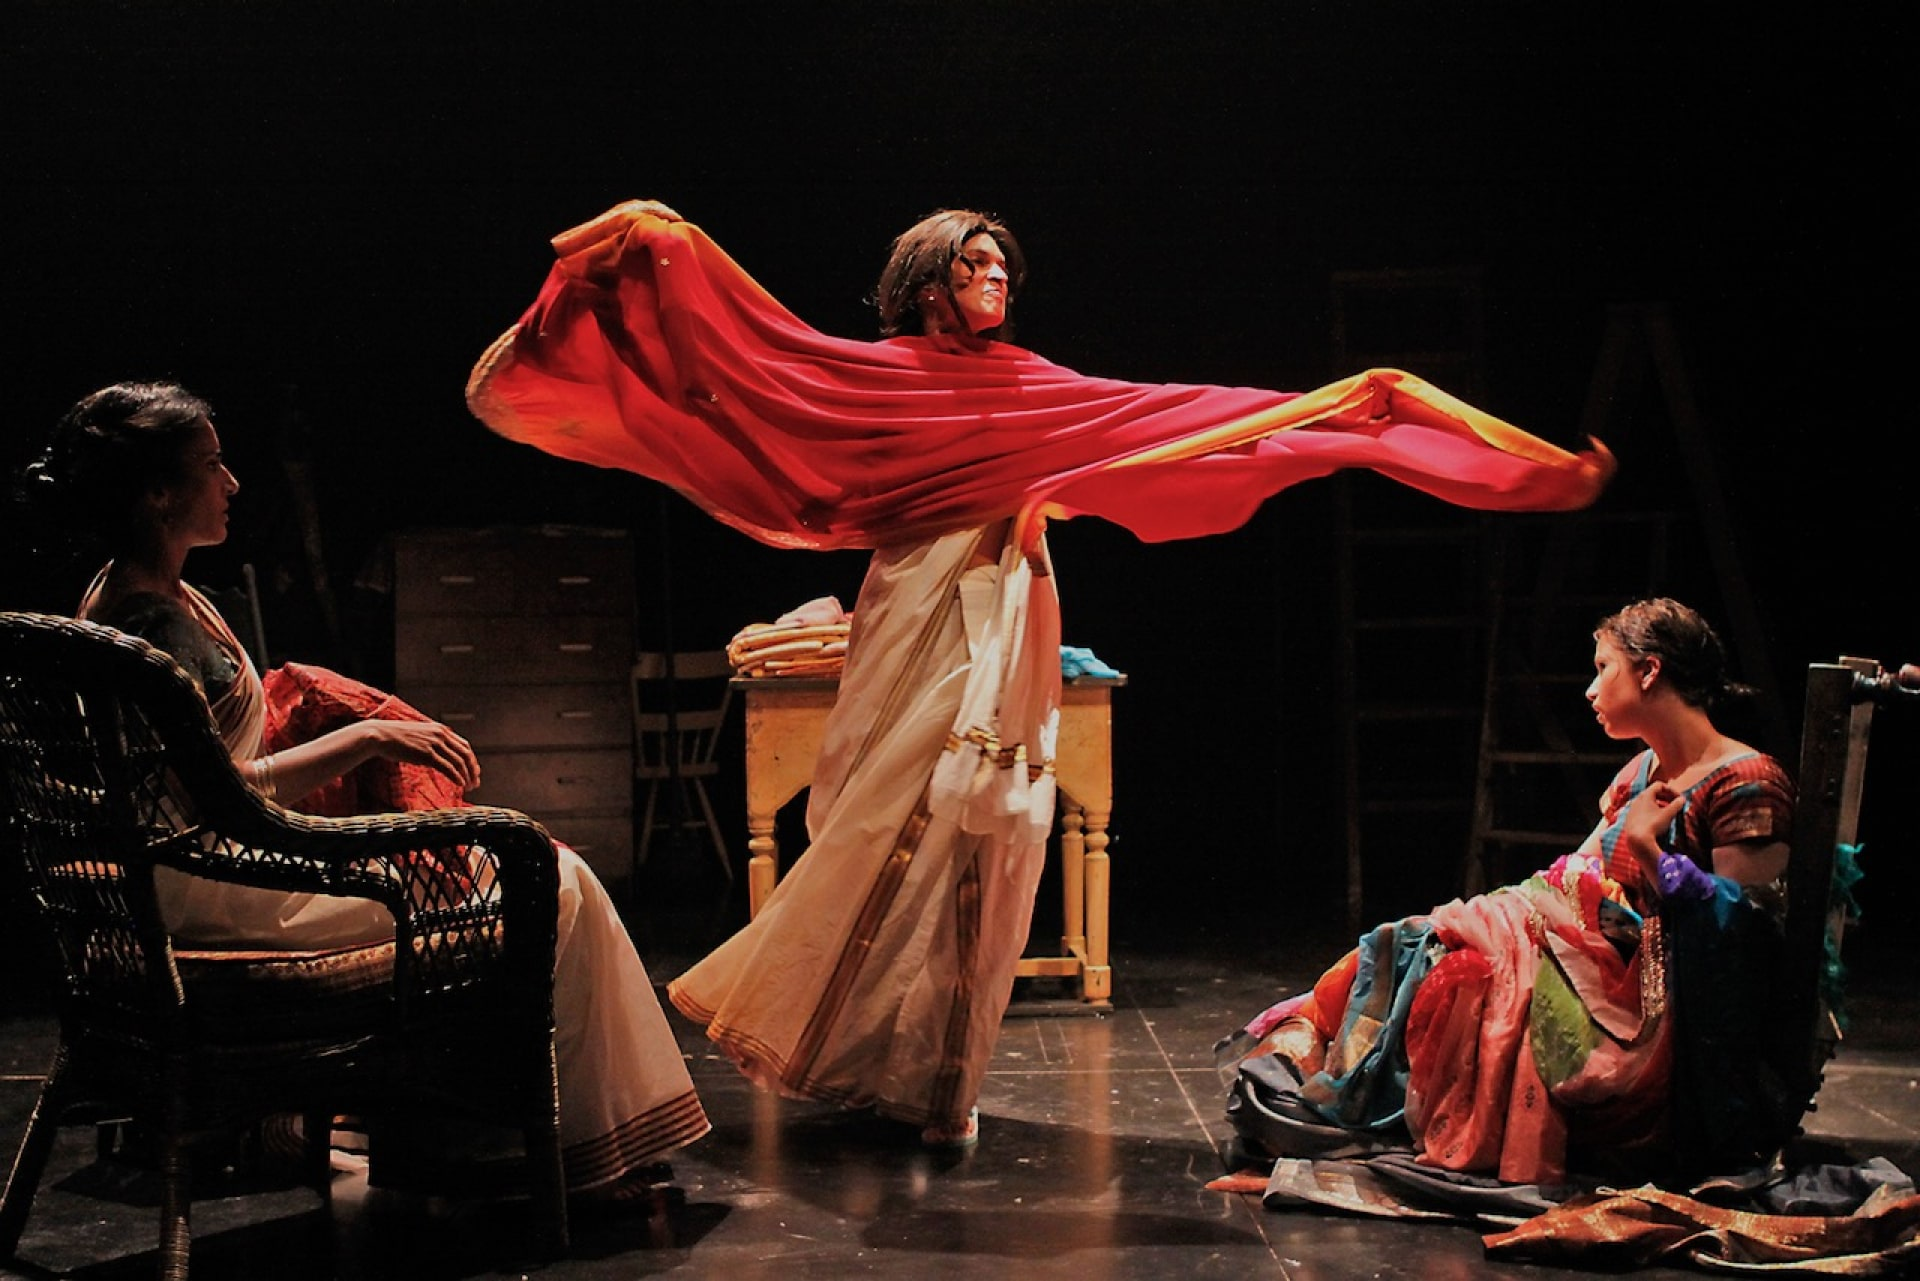 Woman dances with red fabric between two seated women.